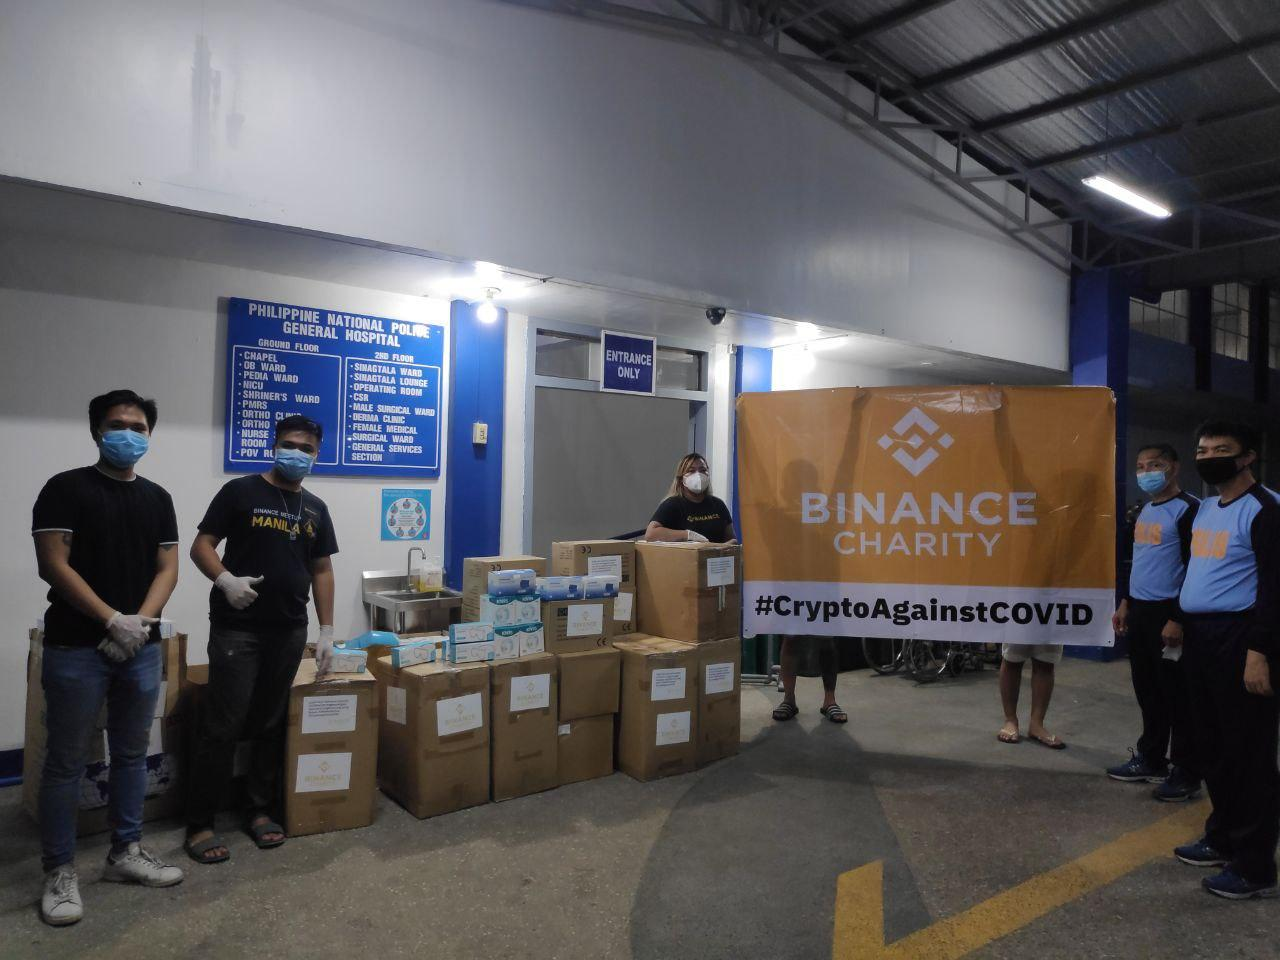 #Binance Charity sigue combatiendo el #Coronavirus en Filipinas.